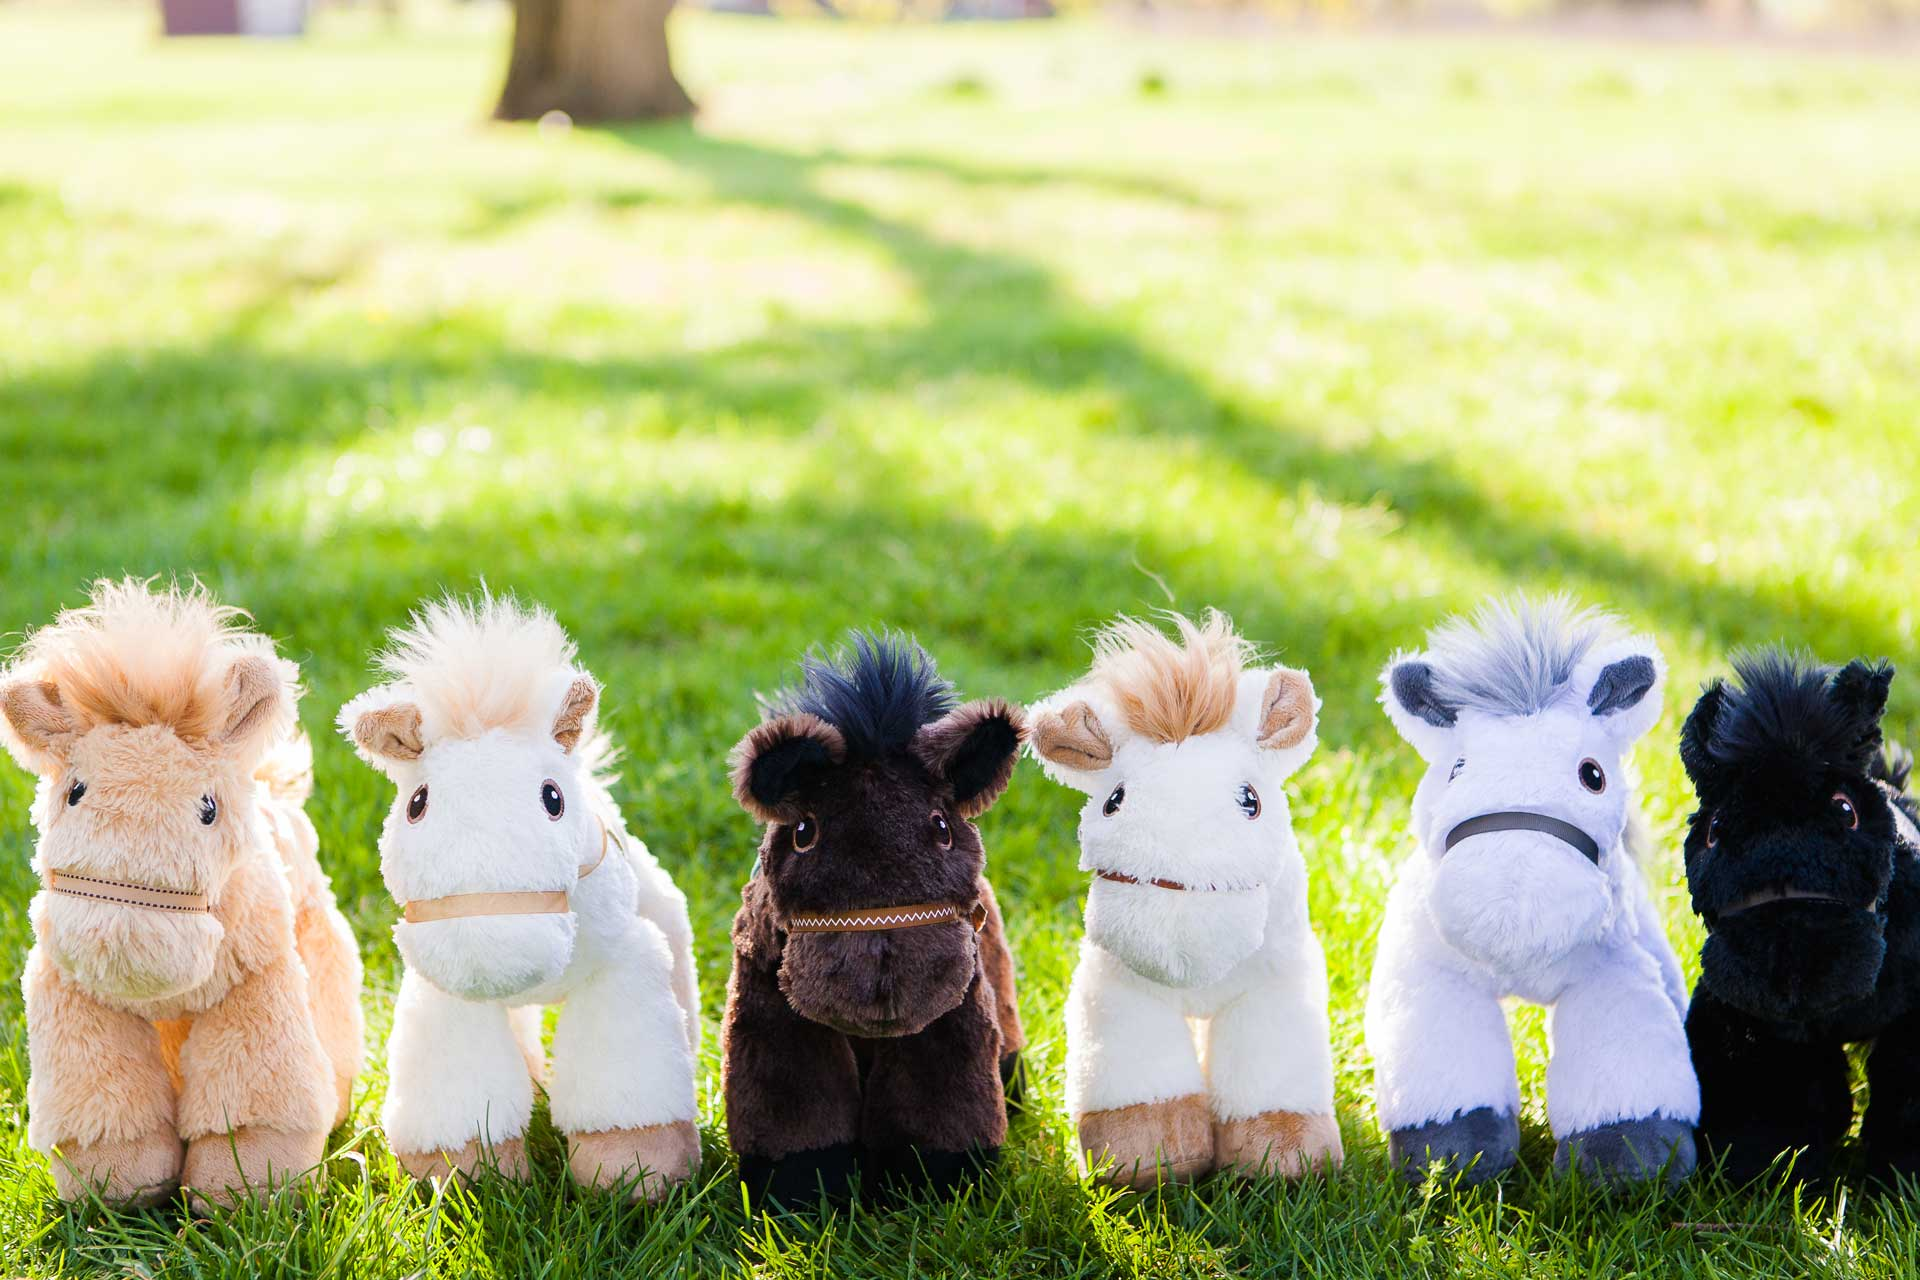 Piccoli Plush horses lined up in the springtime grass.